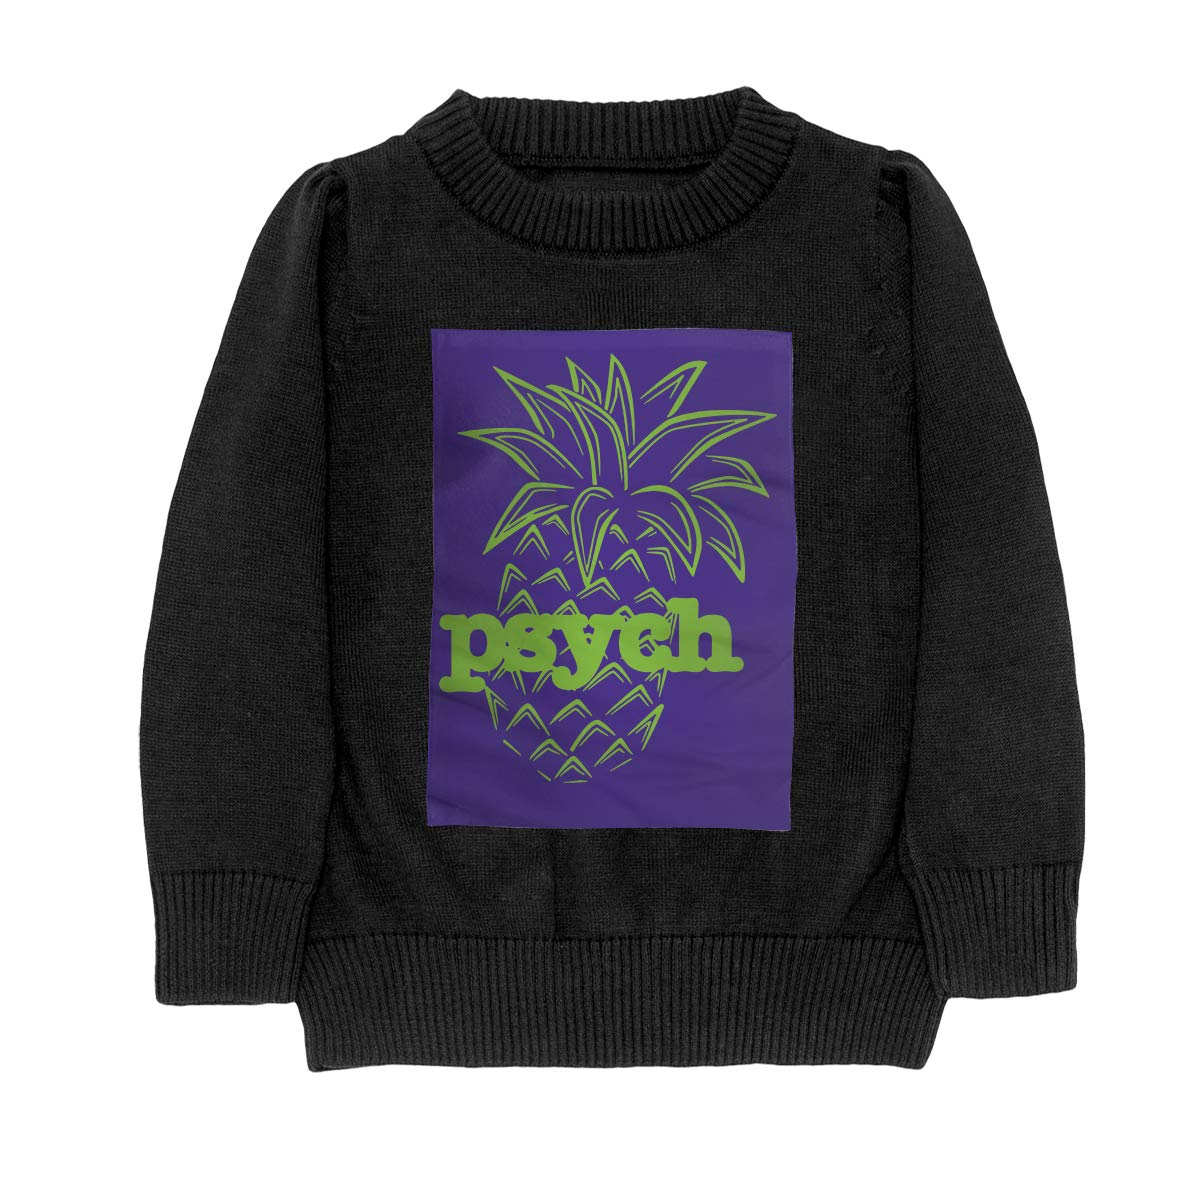 WWTBBJ-B Psych Pineapple Casual Teenager Boys Girls Unisex Sweater Keep Warm